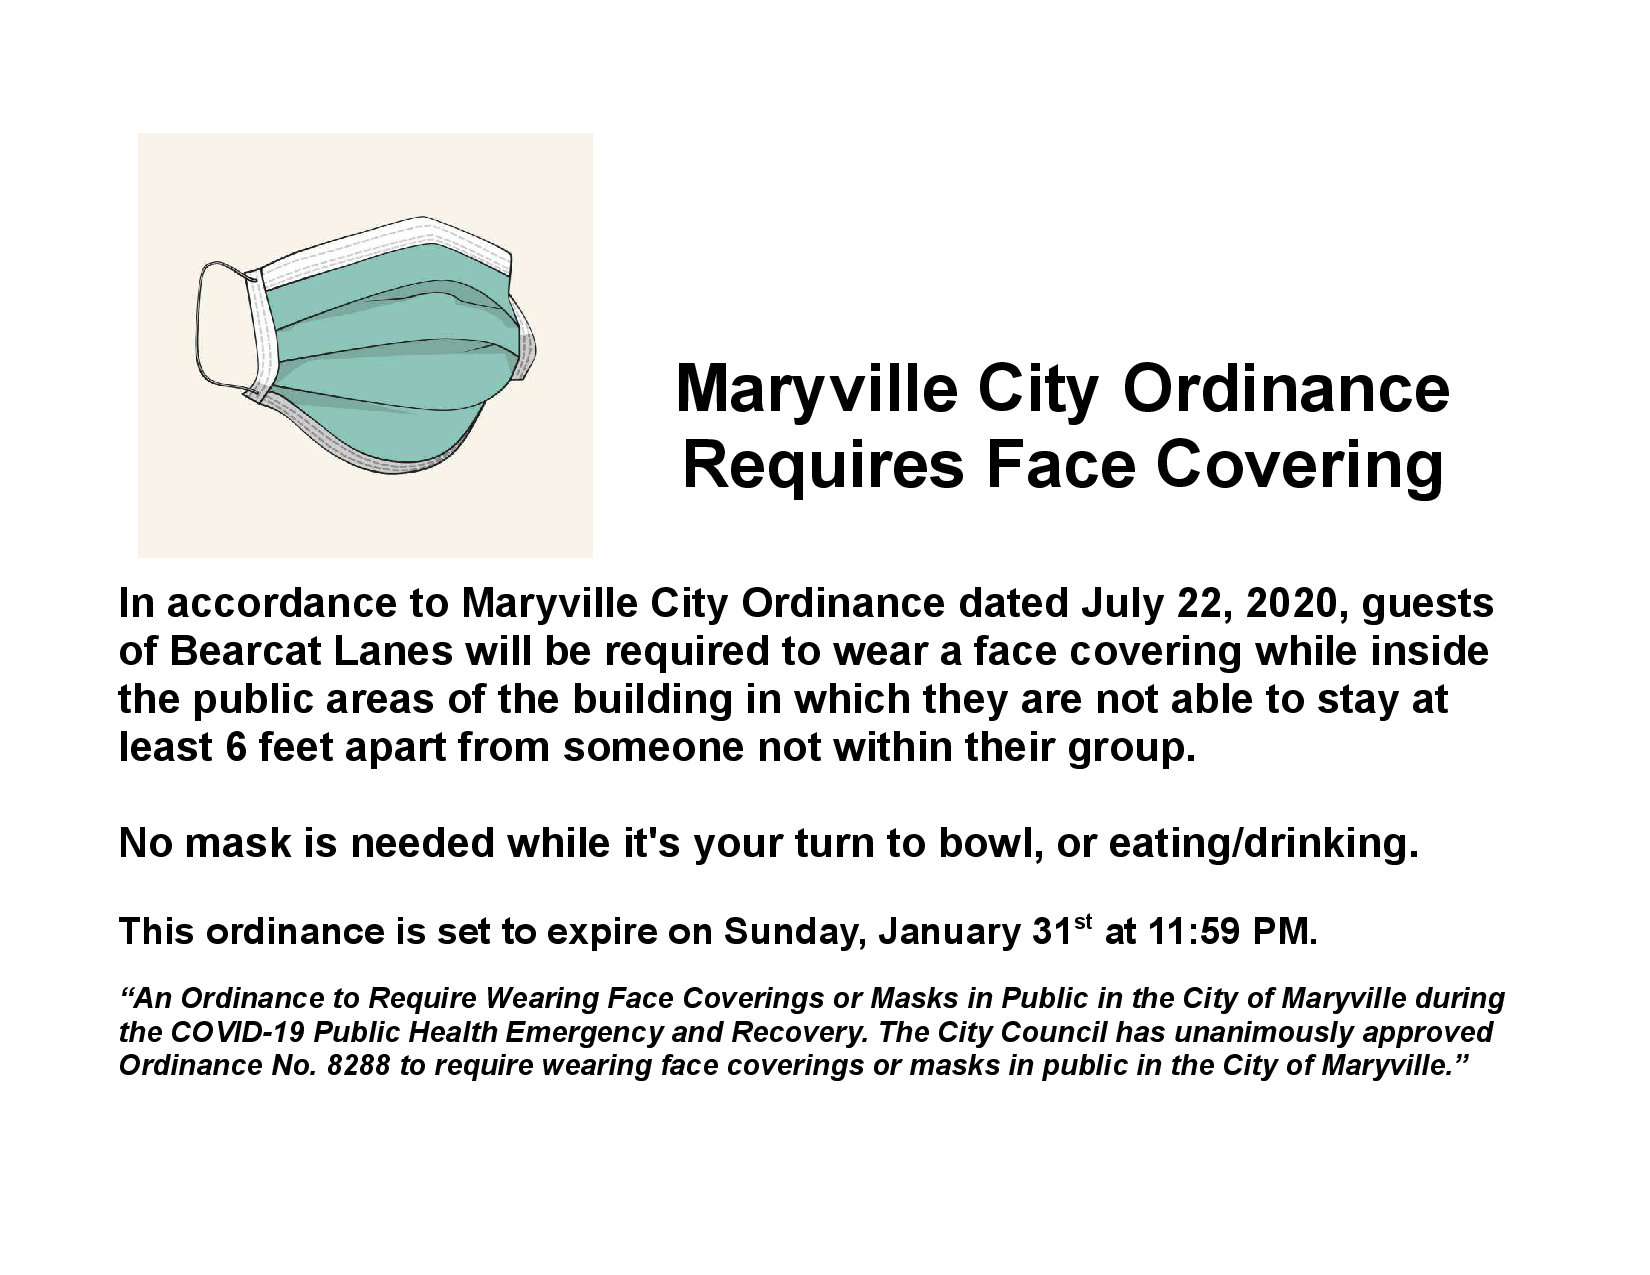 Face Covering Required: In accordance to Maryville City Ordinance dated July 22, 2020, guests of Bearcat Lanes will be required to wear a face covering while inside the public areas of the building that are not actively eating, drinking, or their turn to bowl.